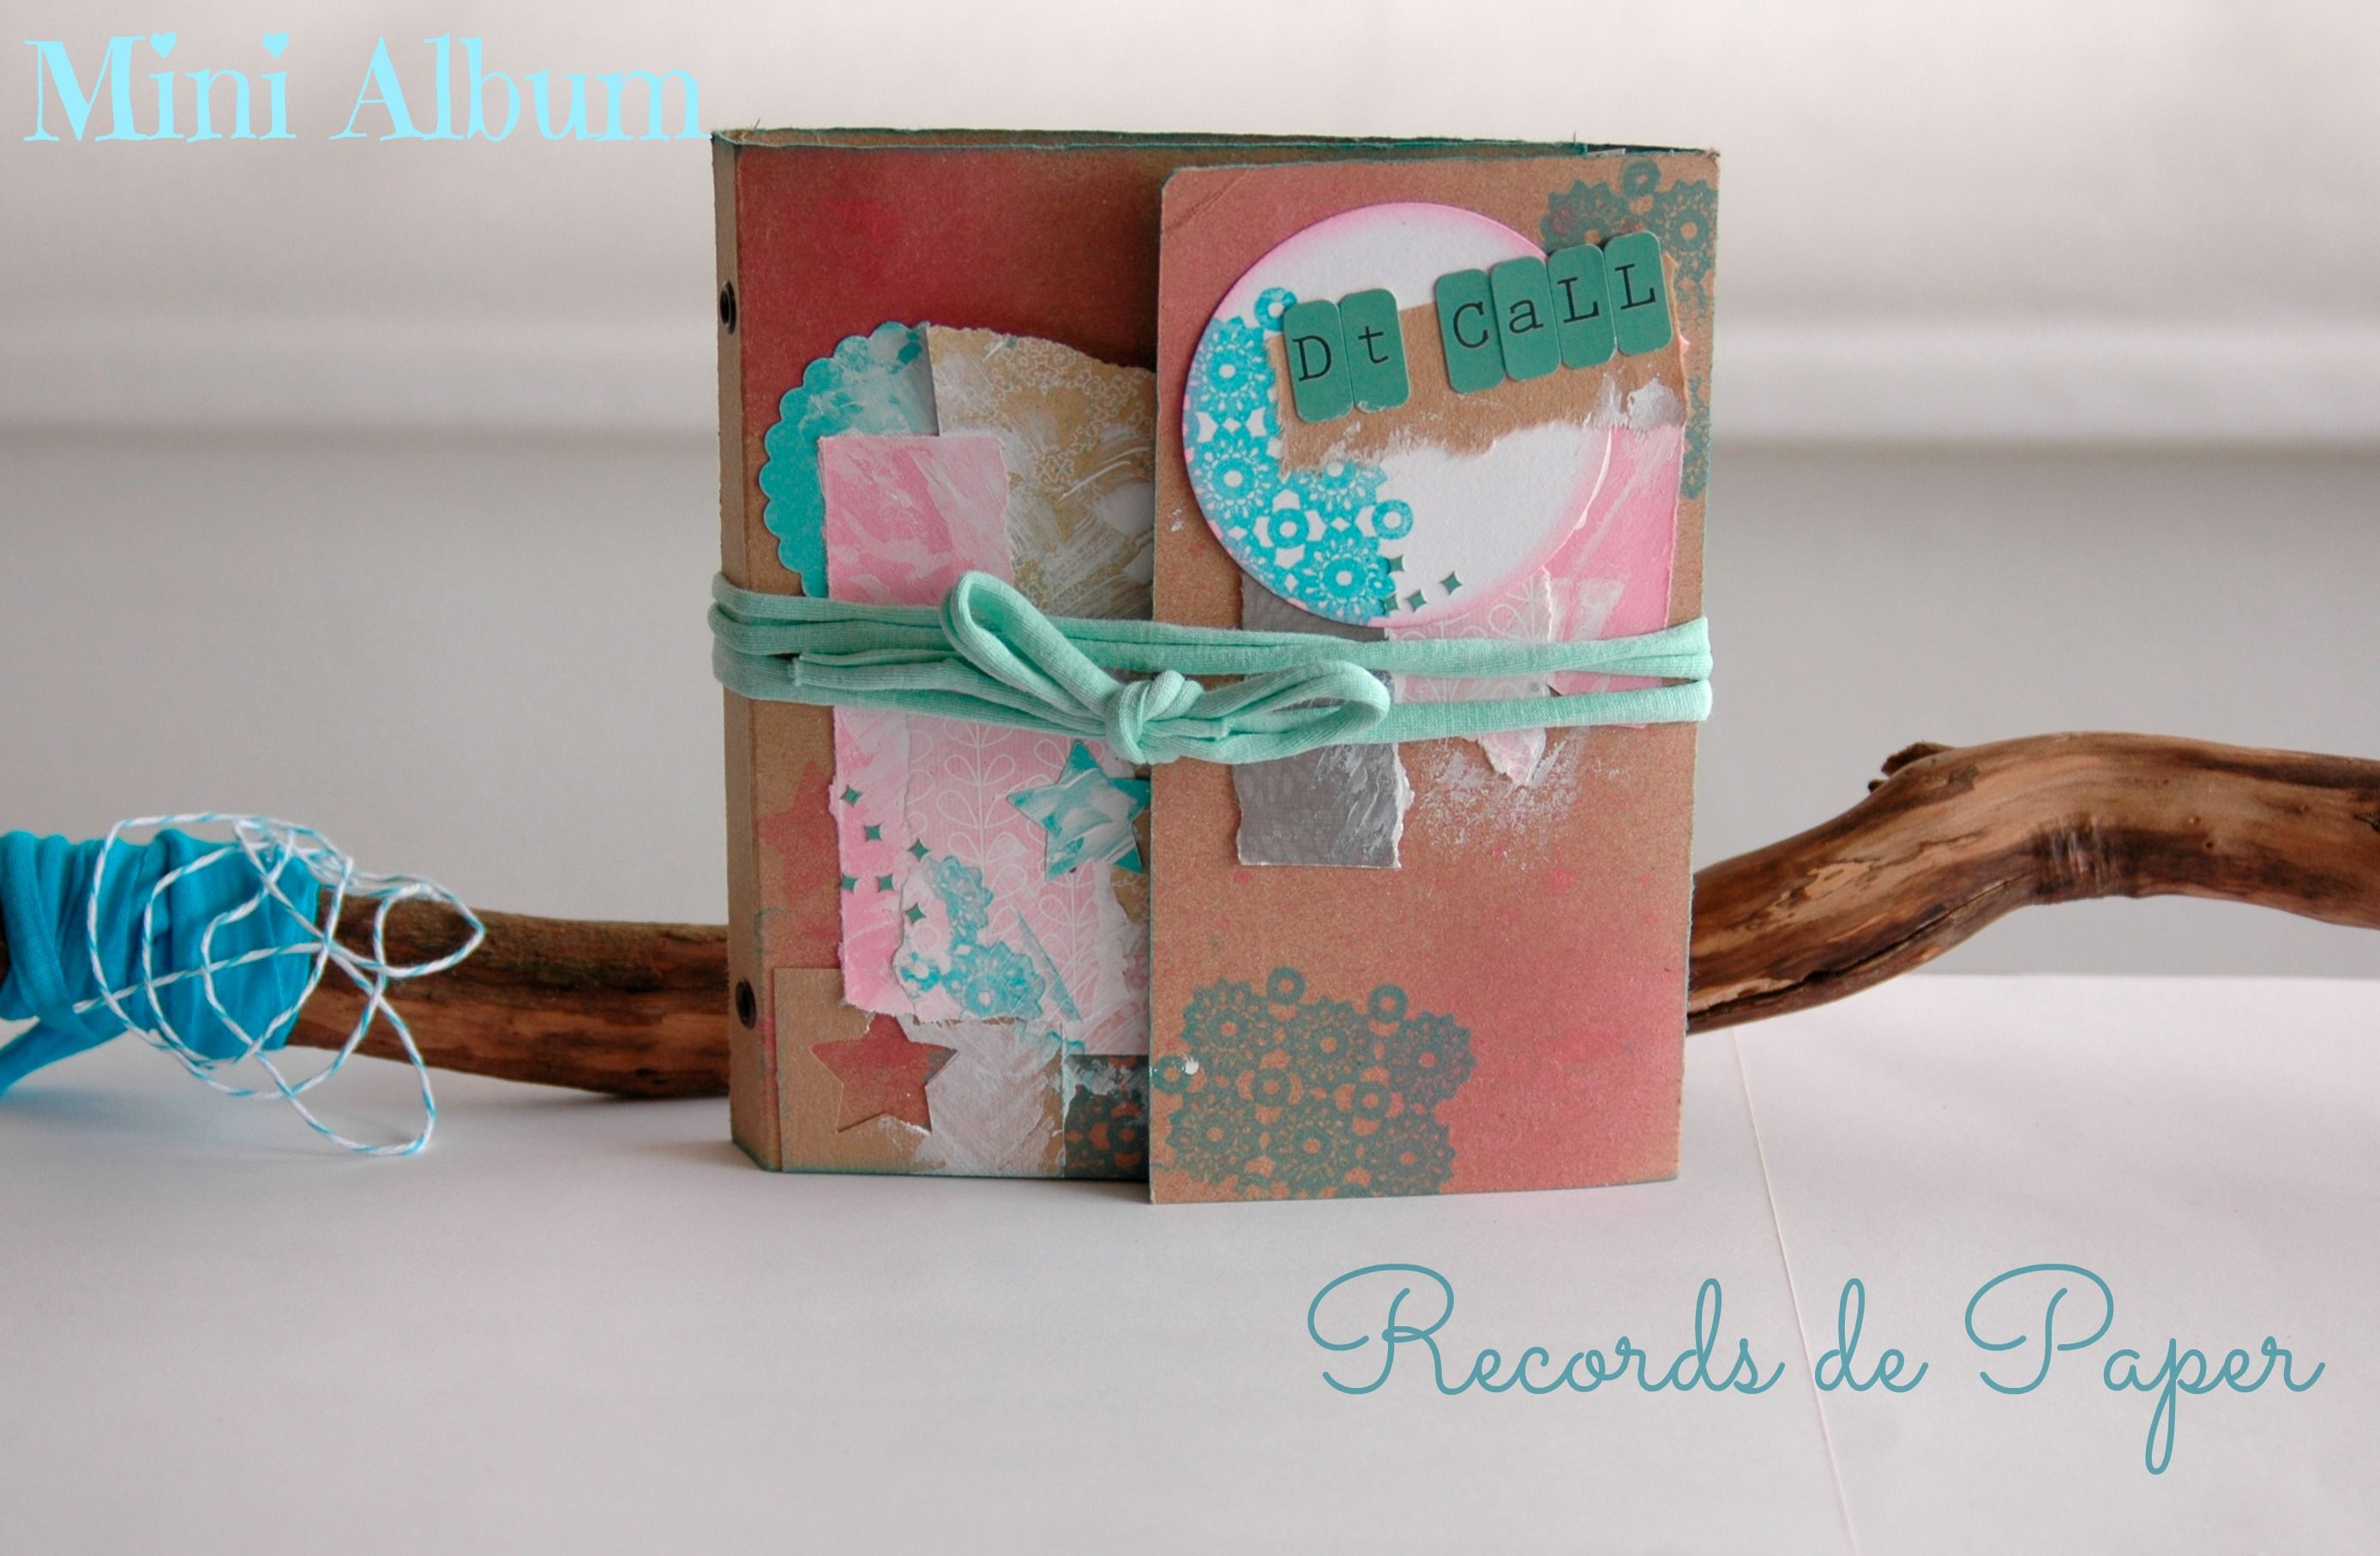 mini álbum scrapbooking, pink, turquoise and brown